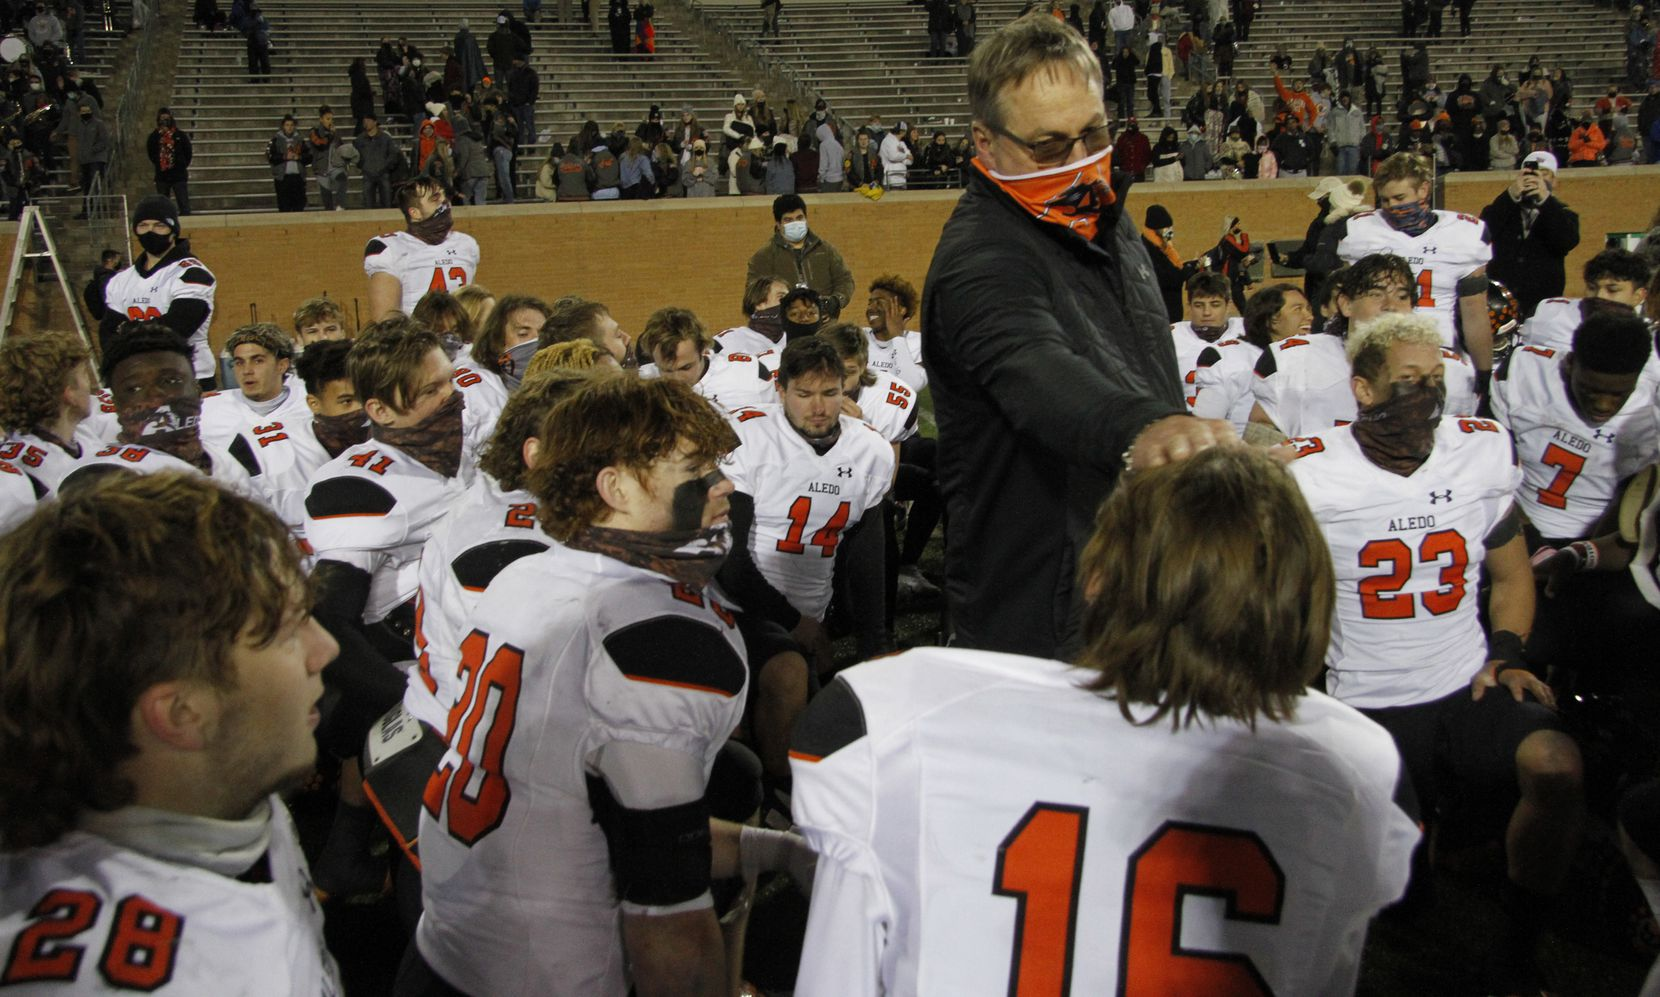 Aledo head coach Tim Buchanan shares words of praise and inspiration following their 55-28 victory over Wichita Fallas Rider to advance to the state tournament. The two teams played their Class 5A Division ll state semifinal football playoff game at Apogee Stadium in Denton on January 8, 2021. (Steve Hamm/ Special Contributor)